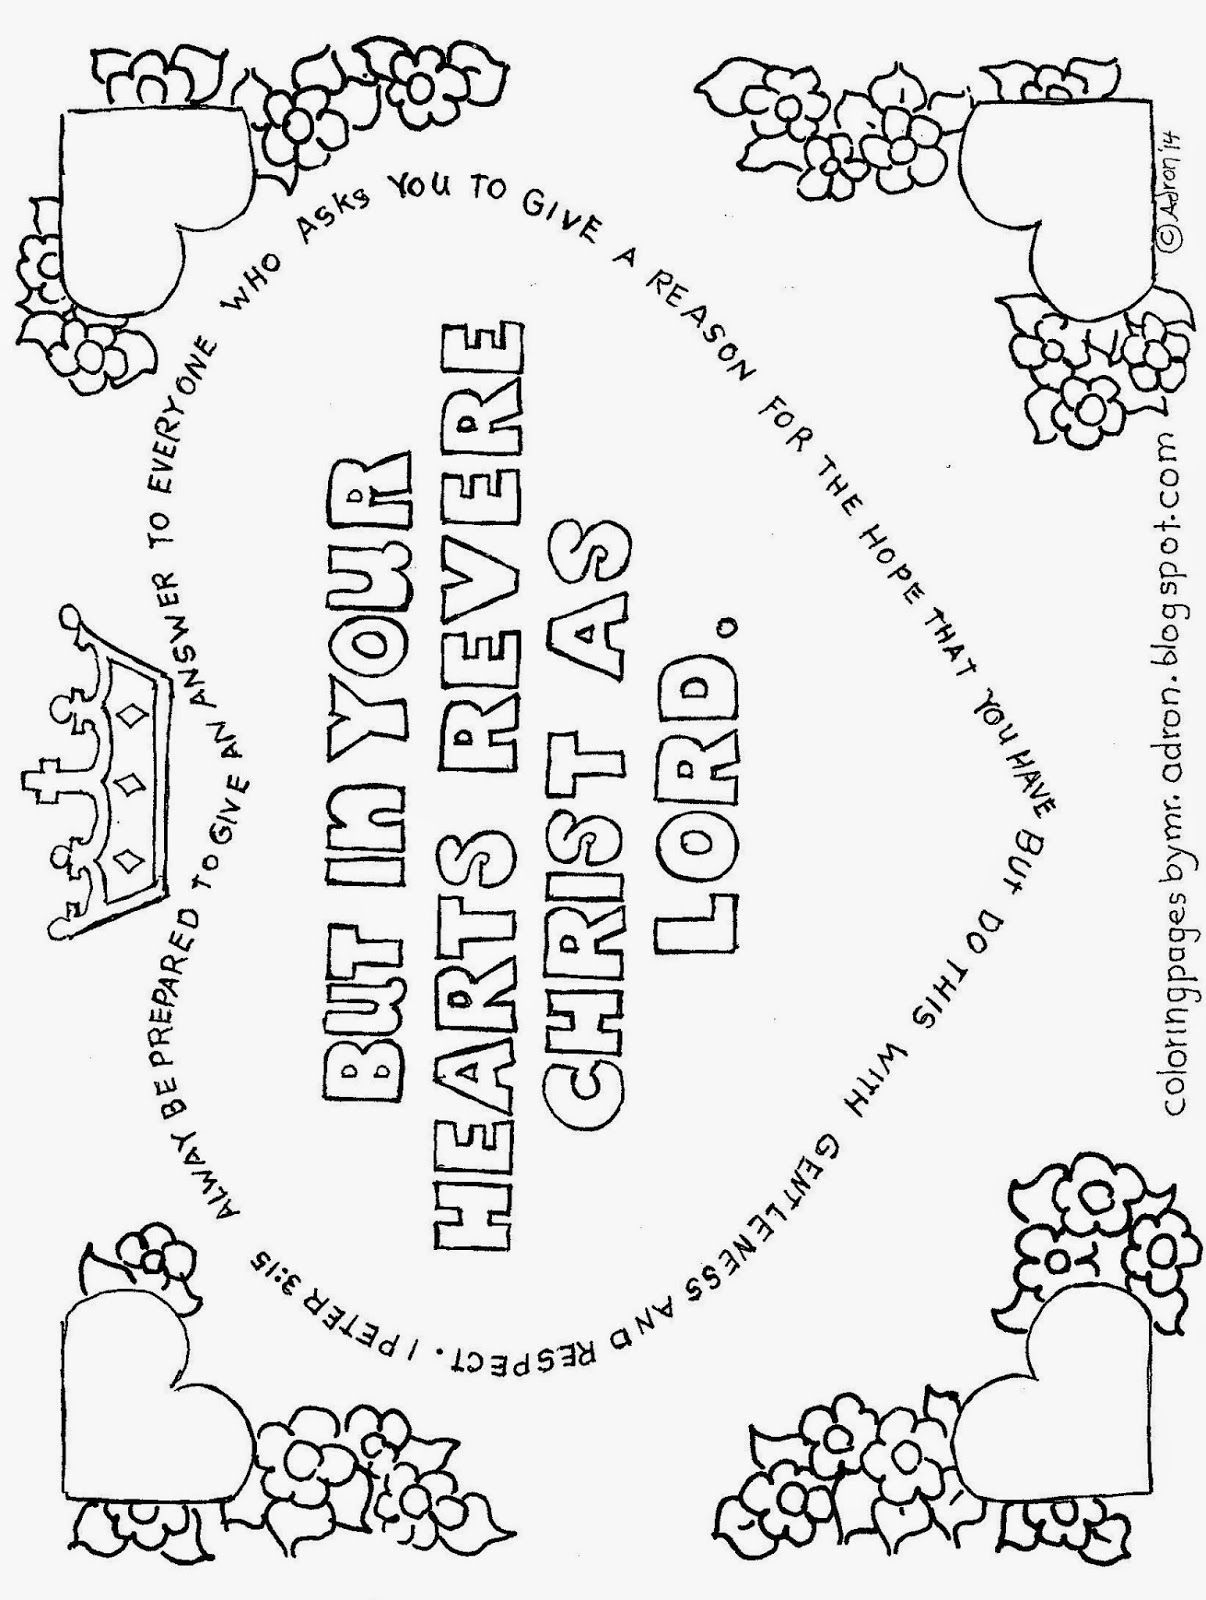 Coloring Pages For Kids By Mr Adron In Your Hearts Revere Christ 1 Peter 3 15 Colorin